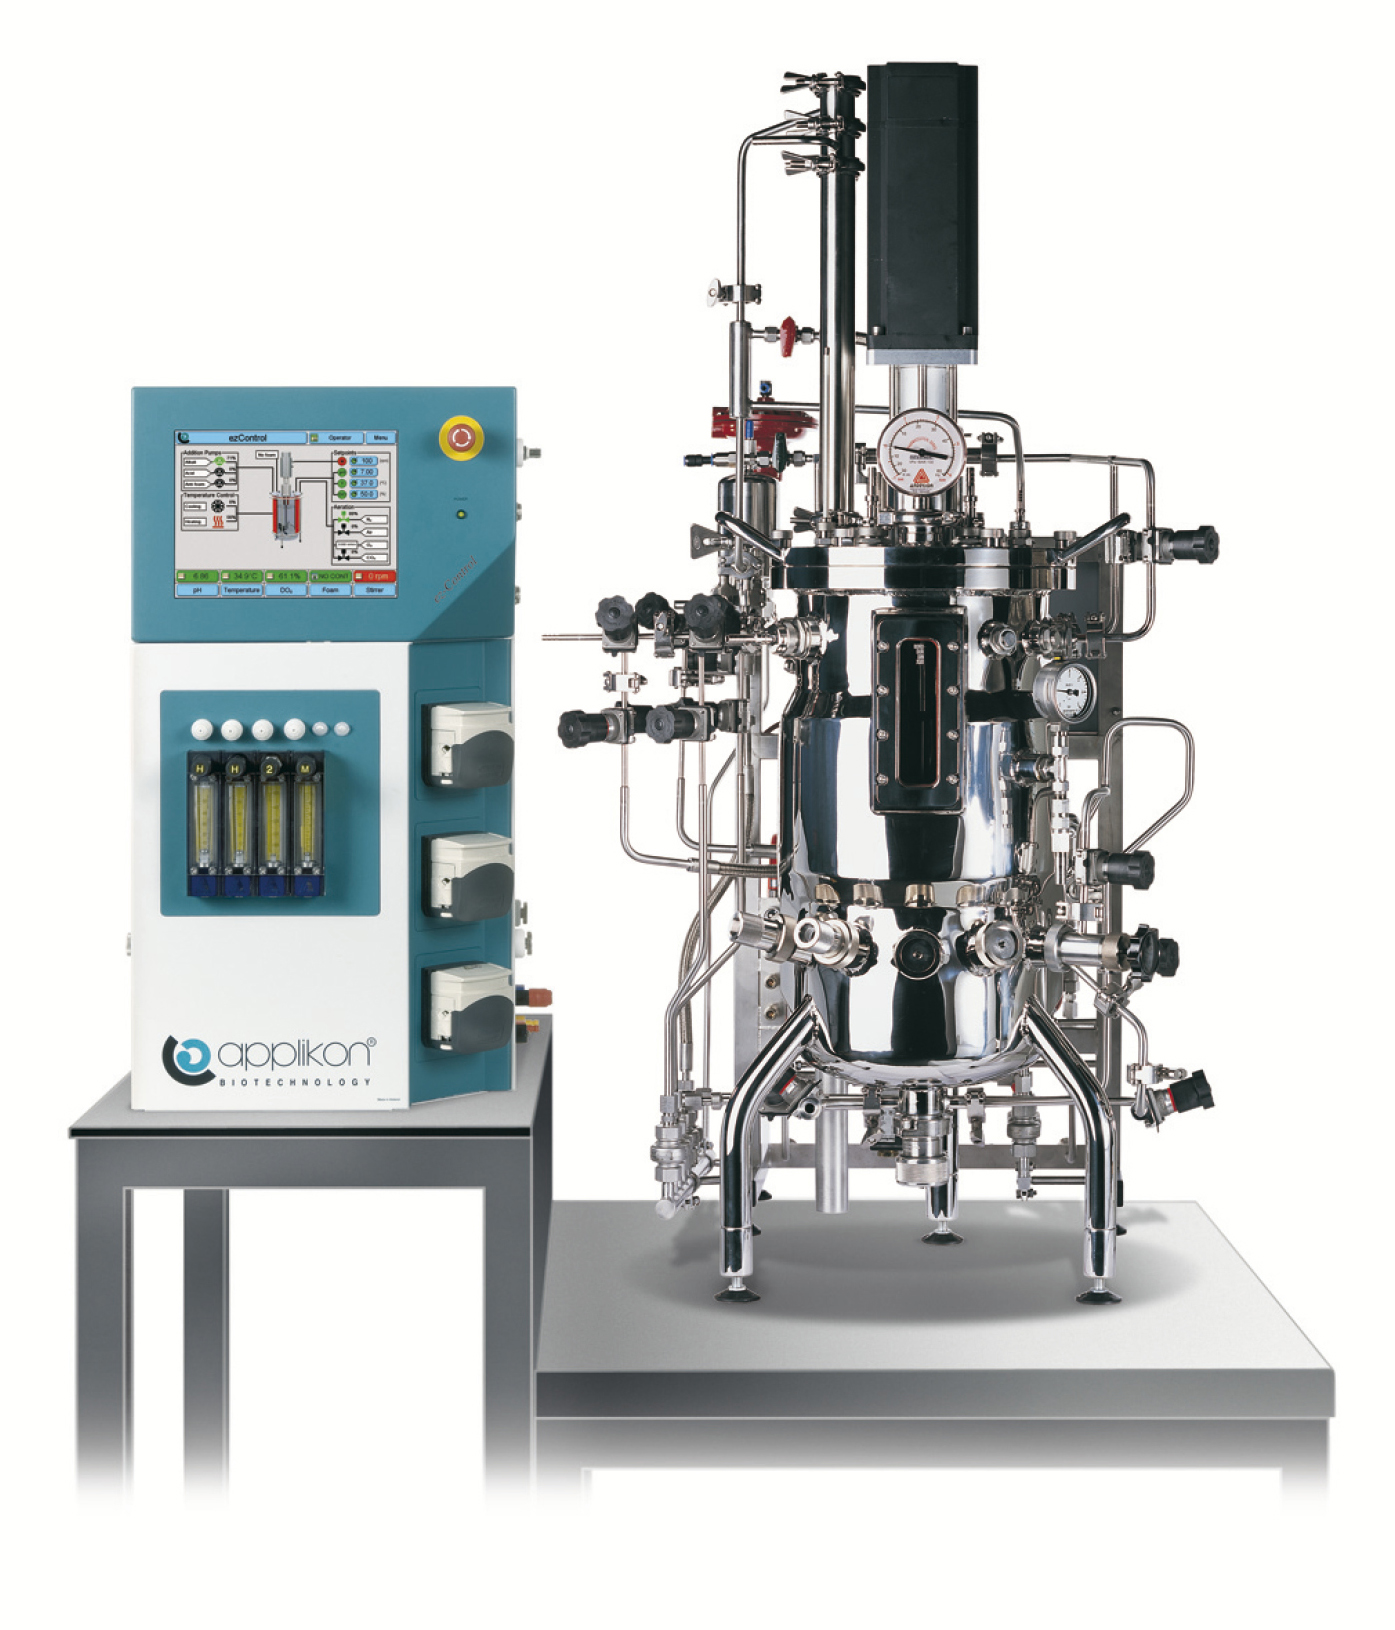 Steam-in-place bioreactor systems